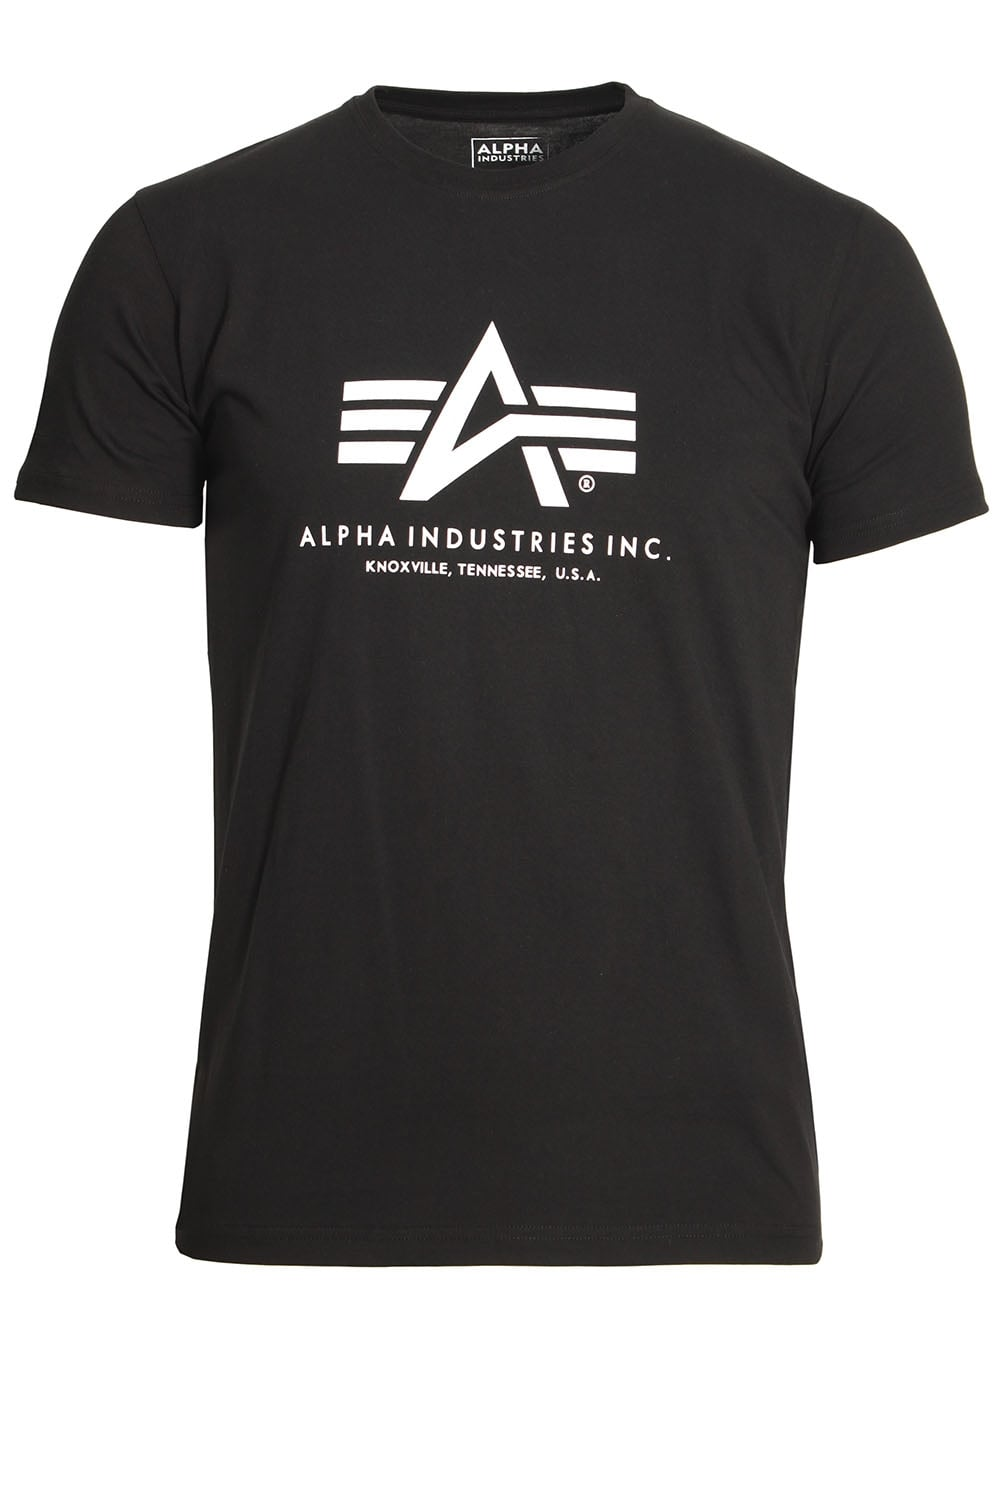 21e5a474714e7 Alpha Industries Basic Black T-Shirt